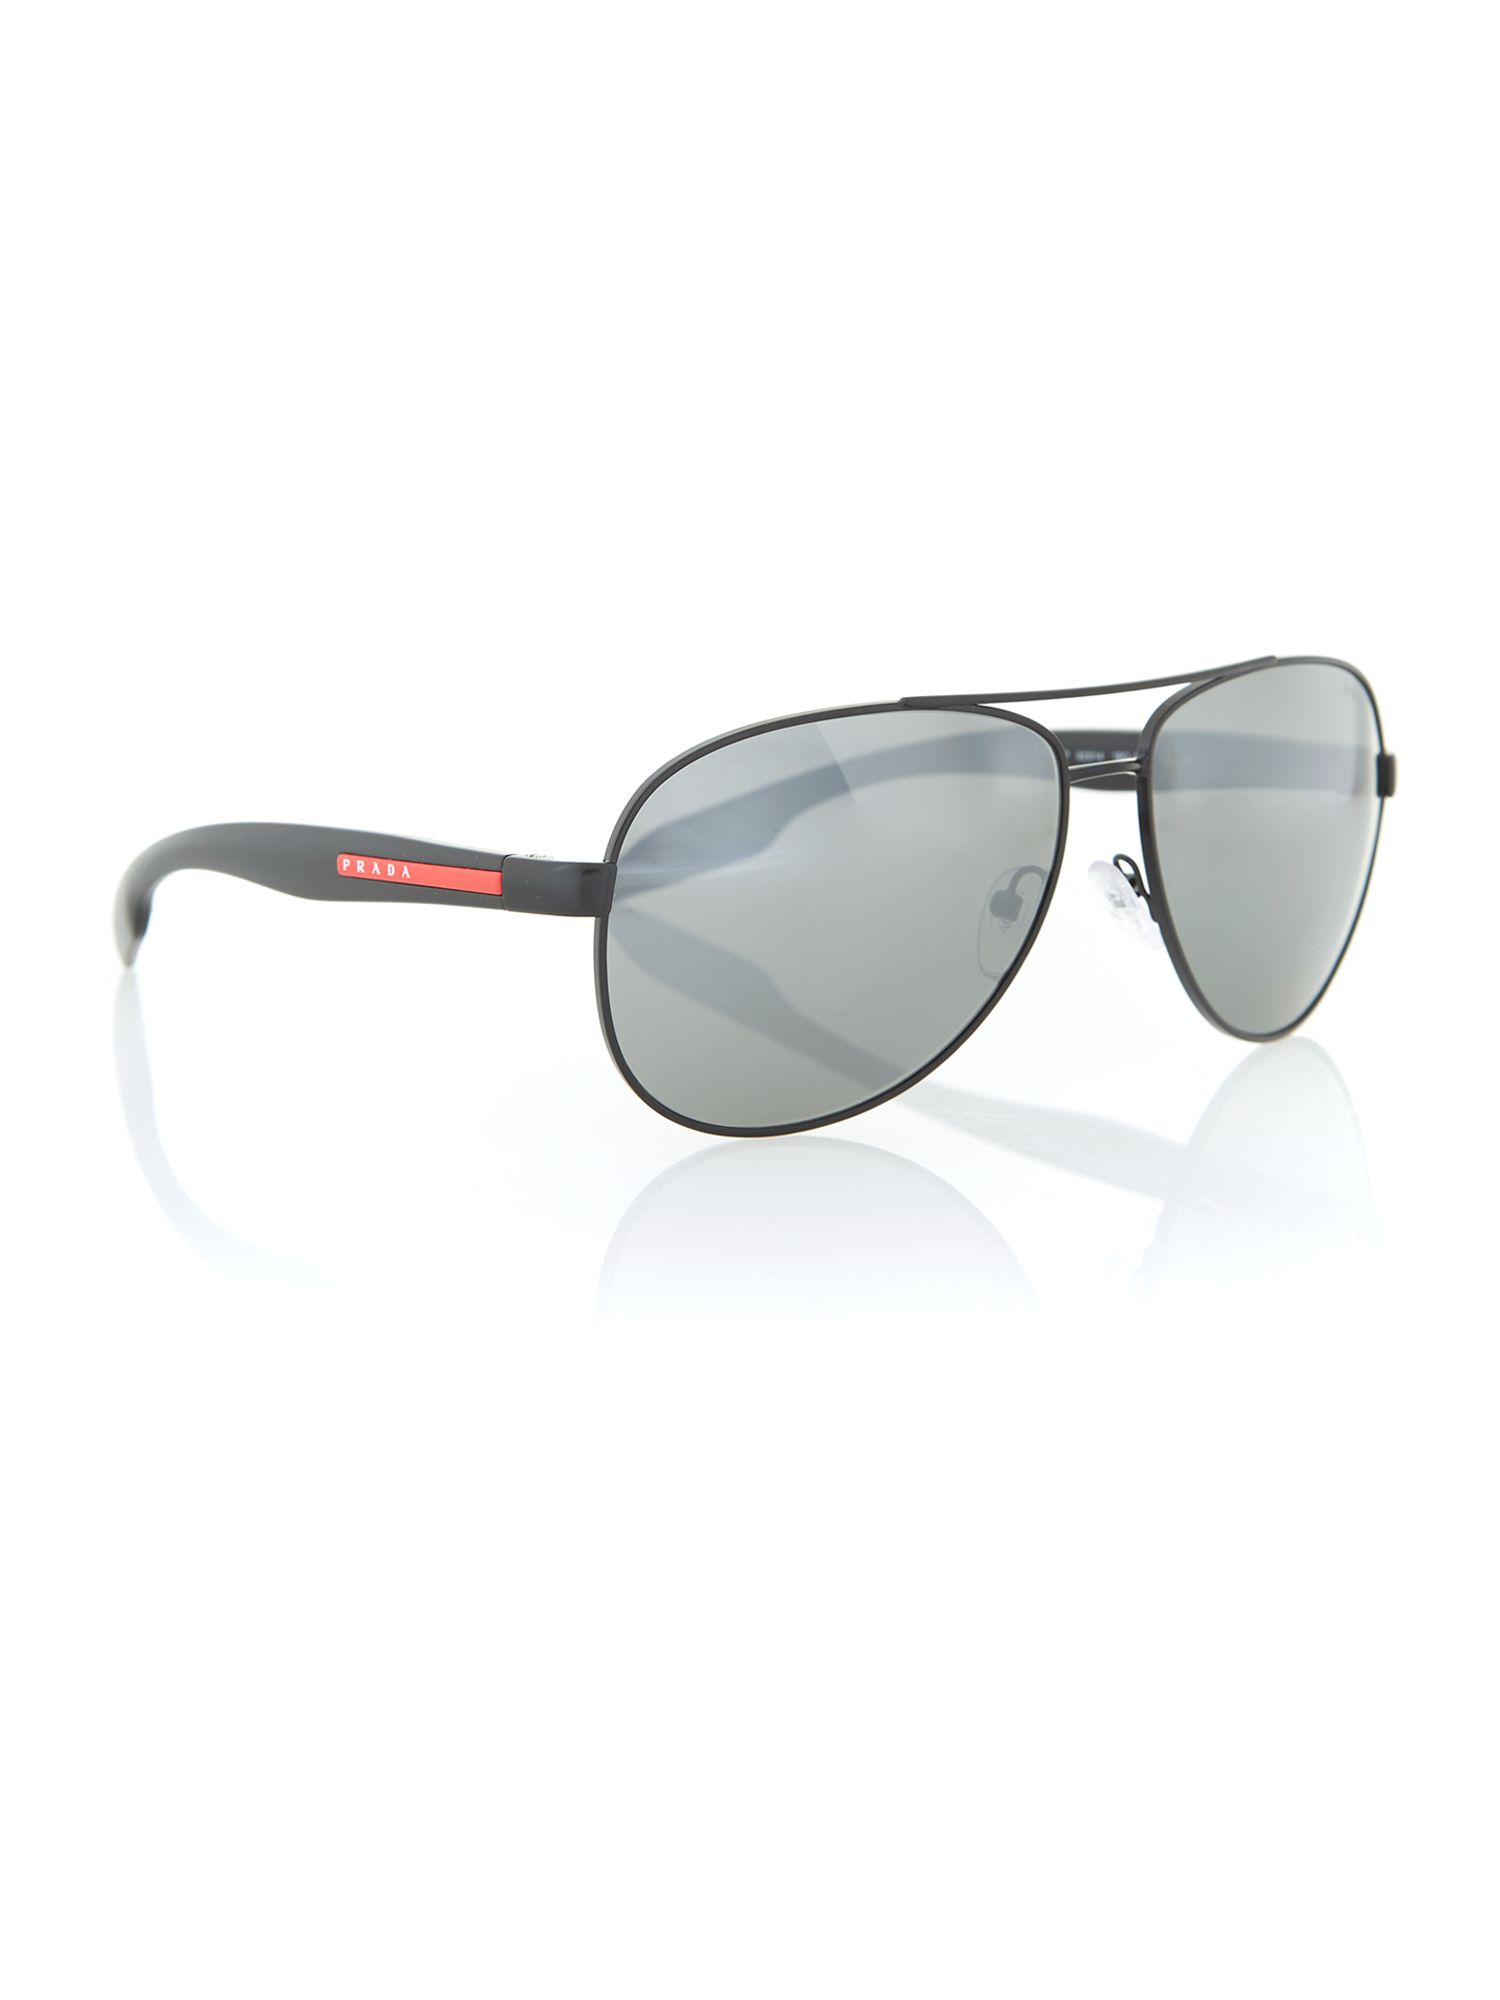 Prada Linea Rossa Mens Shiny Black Aviator Sunglasses